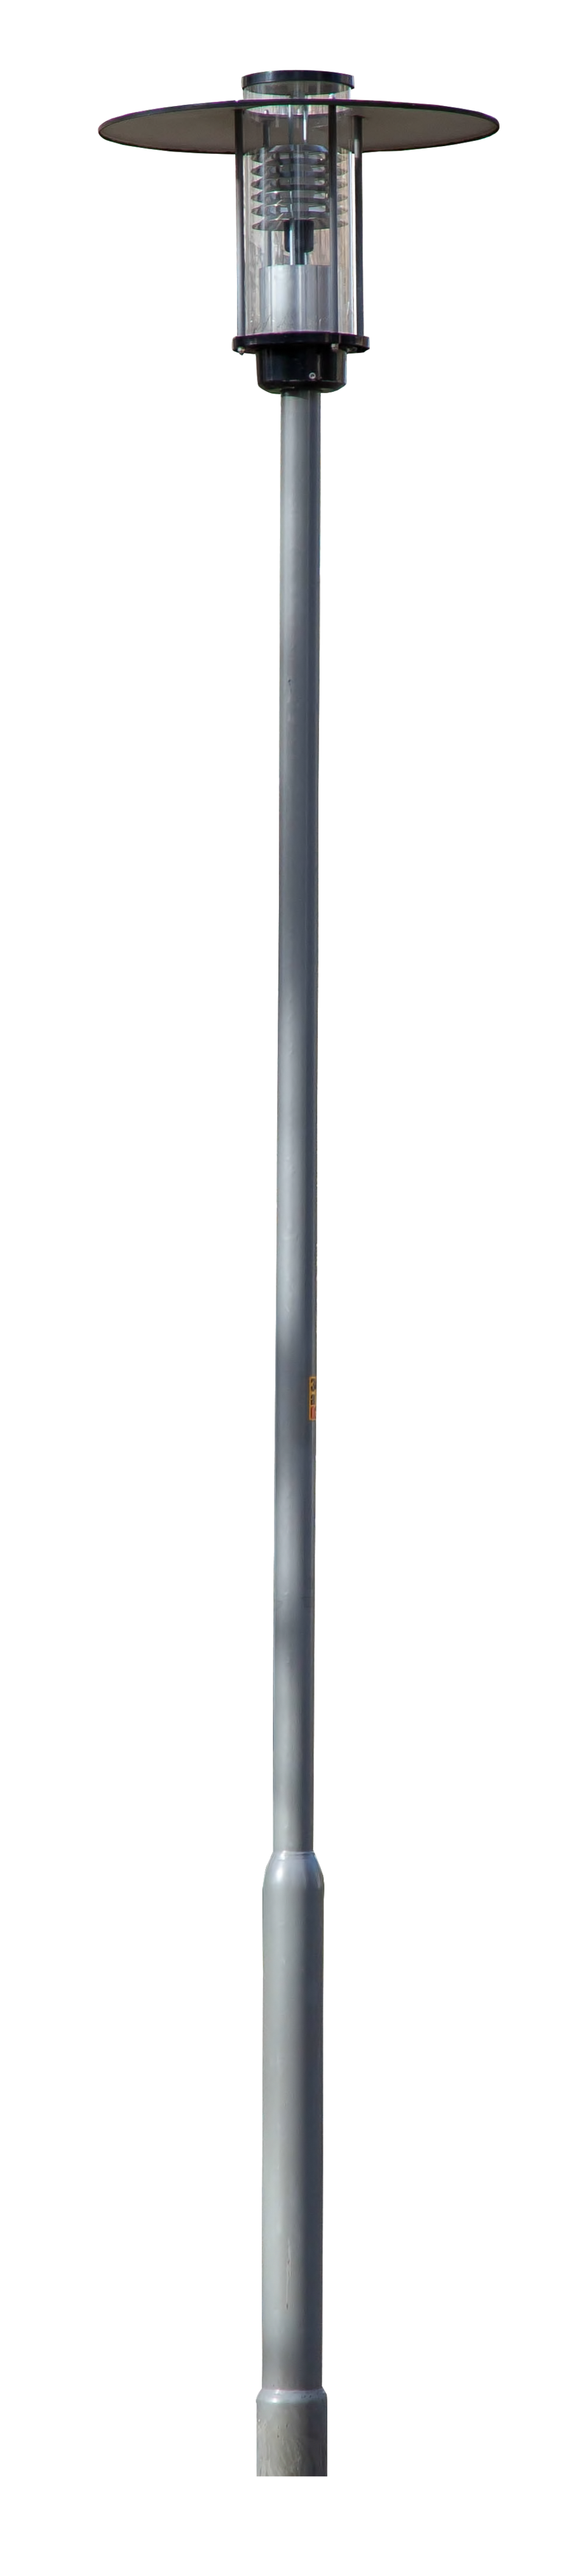 Street Light Transparent Background PNG Image